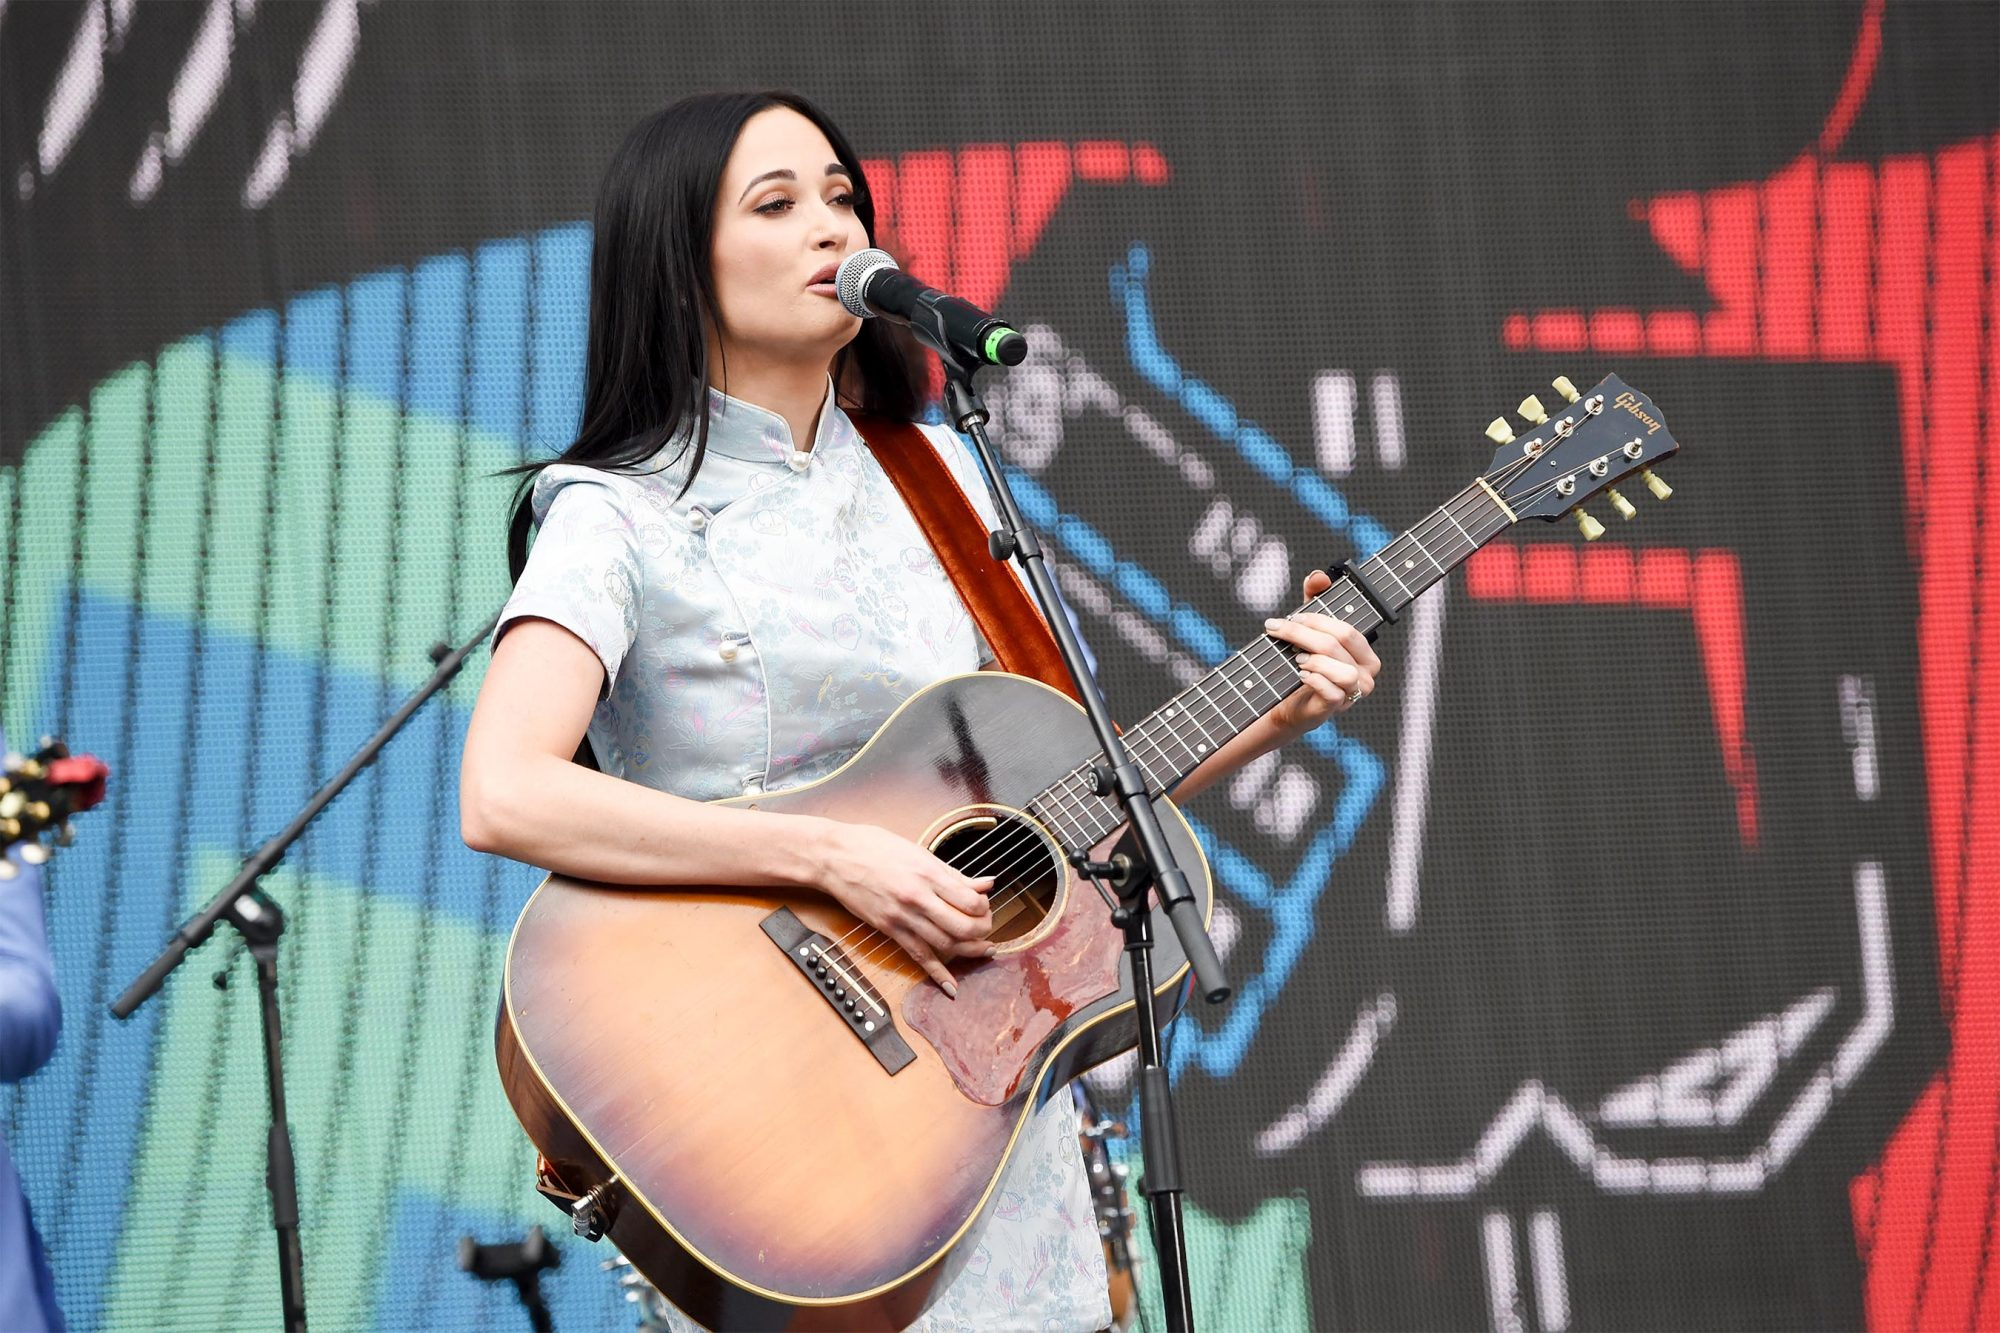 JOHANNESBURG, SOUTH AFRICA - DECEMBER 02: Kacey Musgraves performs during the Global Citizen Festival: Mandela 100 at FNB Stadium on December 2, 2018 in Johannesburg, South Africa. (Photo by Kevin Mazur/Getty Images for Global Citizen Festival: Mandela 100)